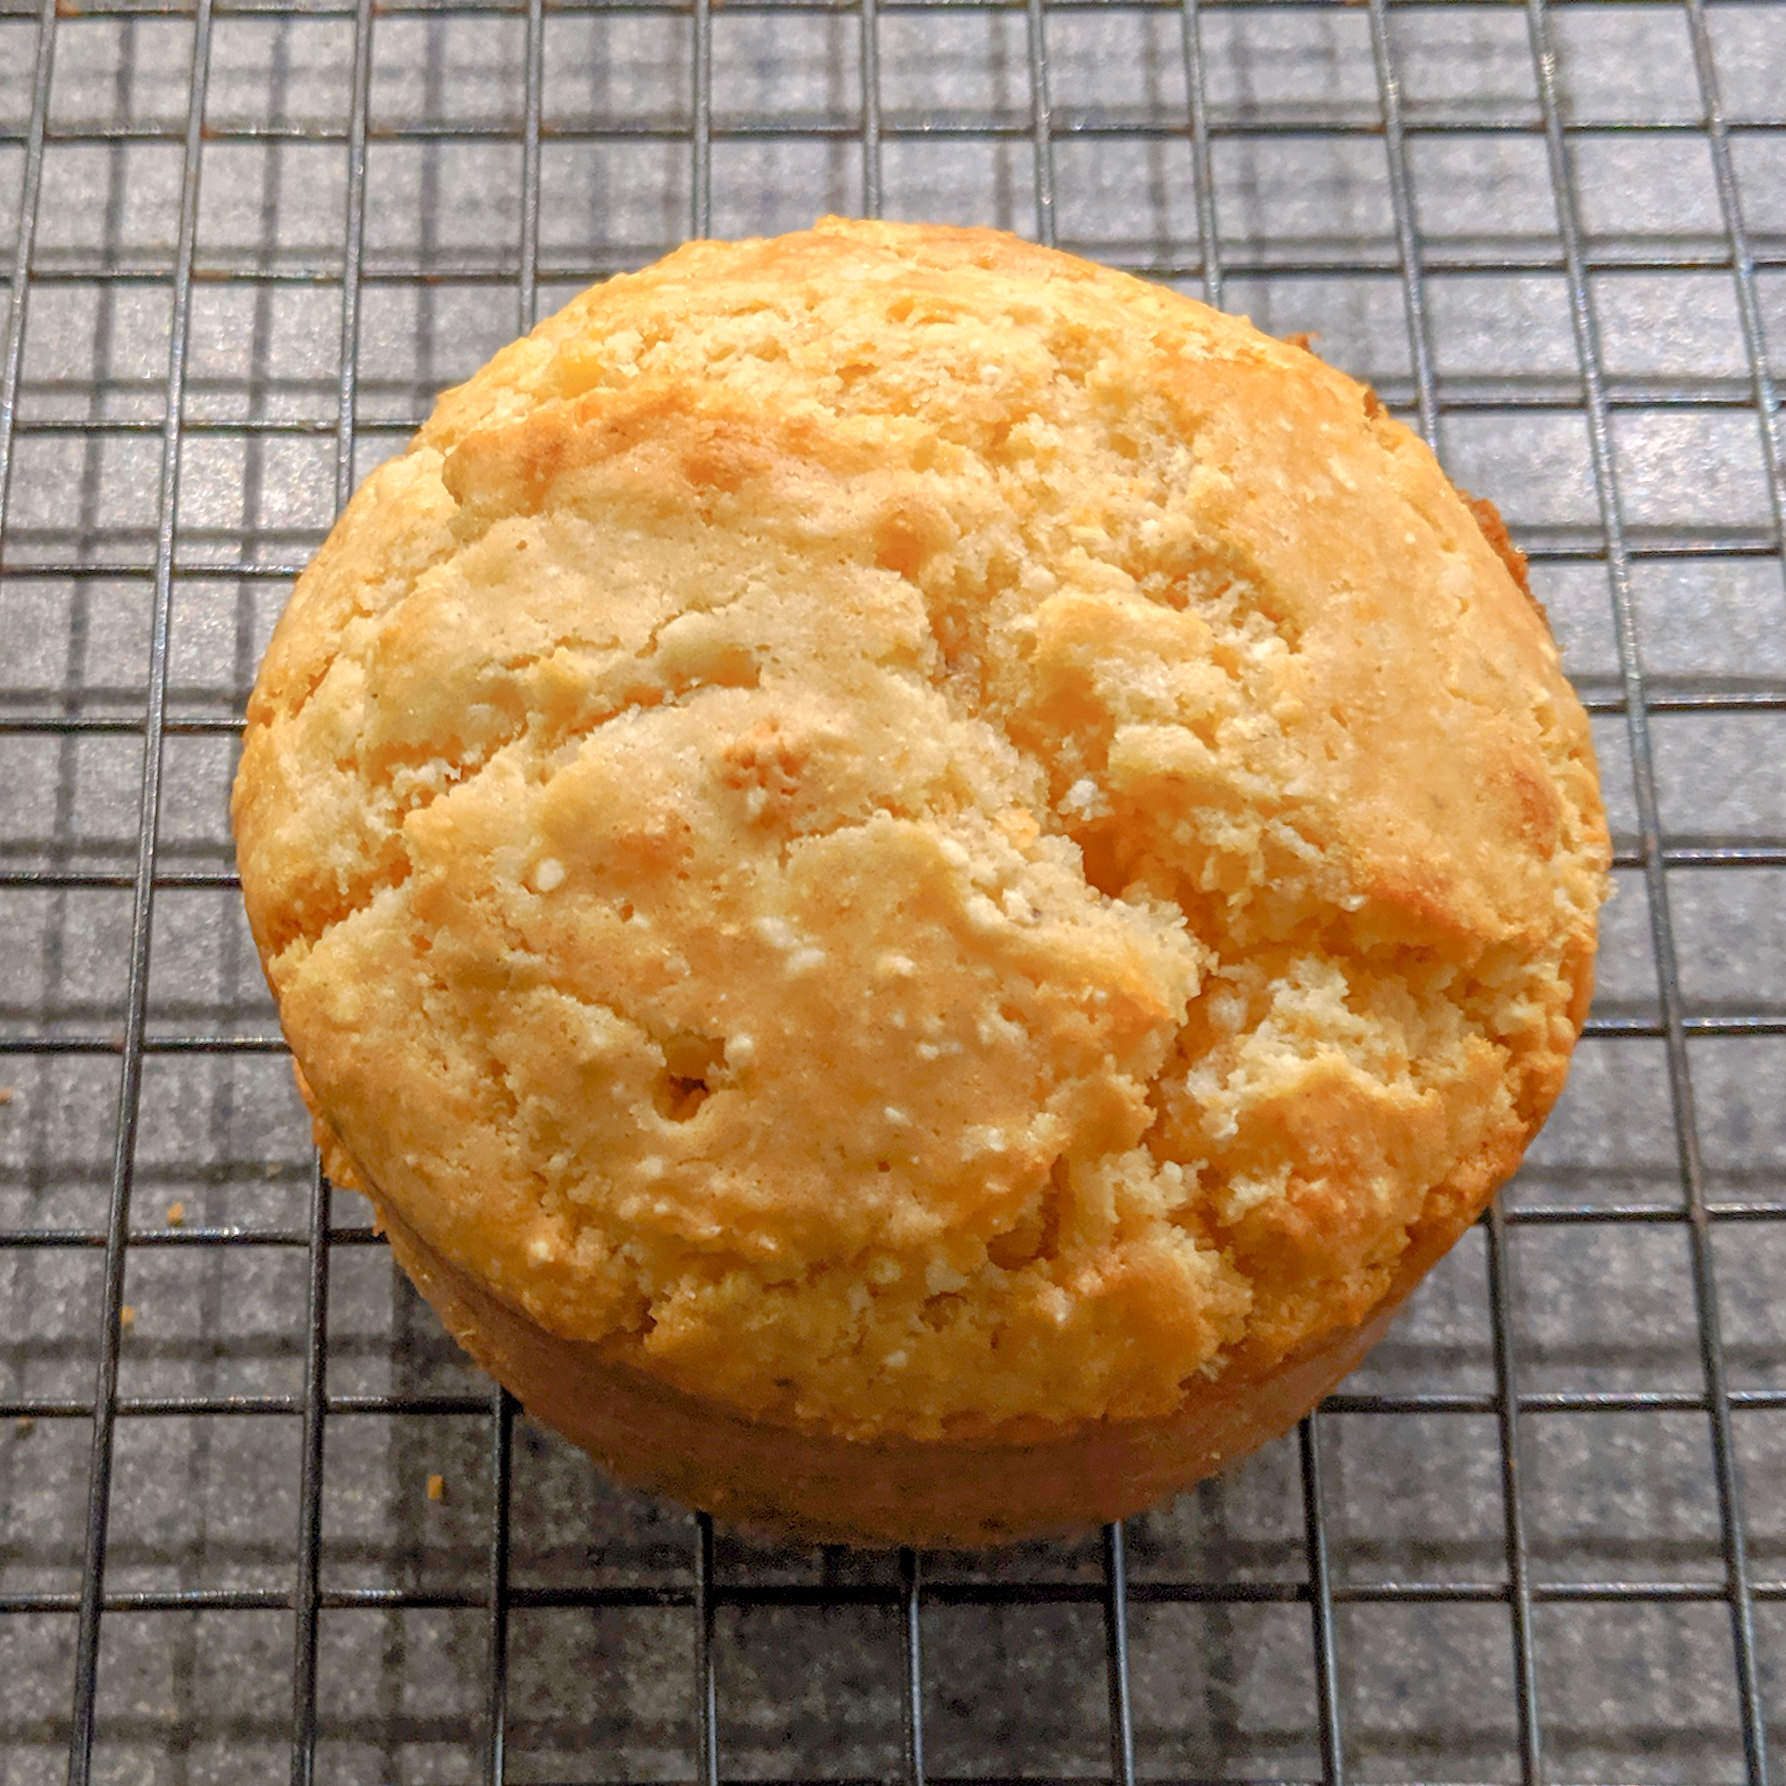 Whole corn muffin, beautiful golden color